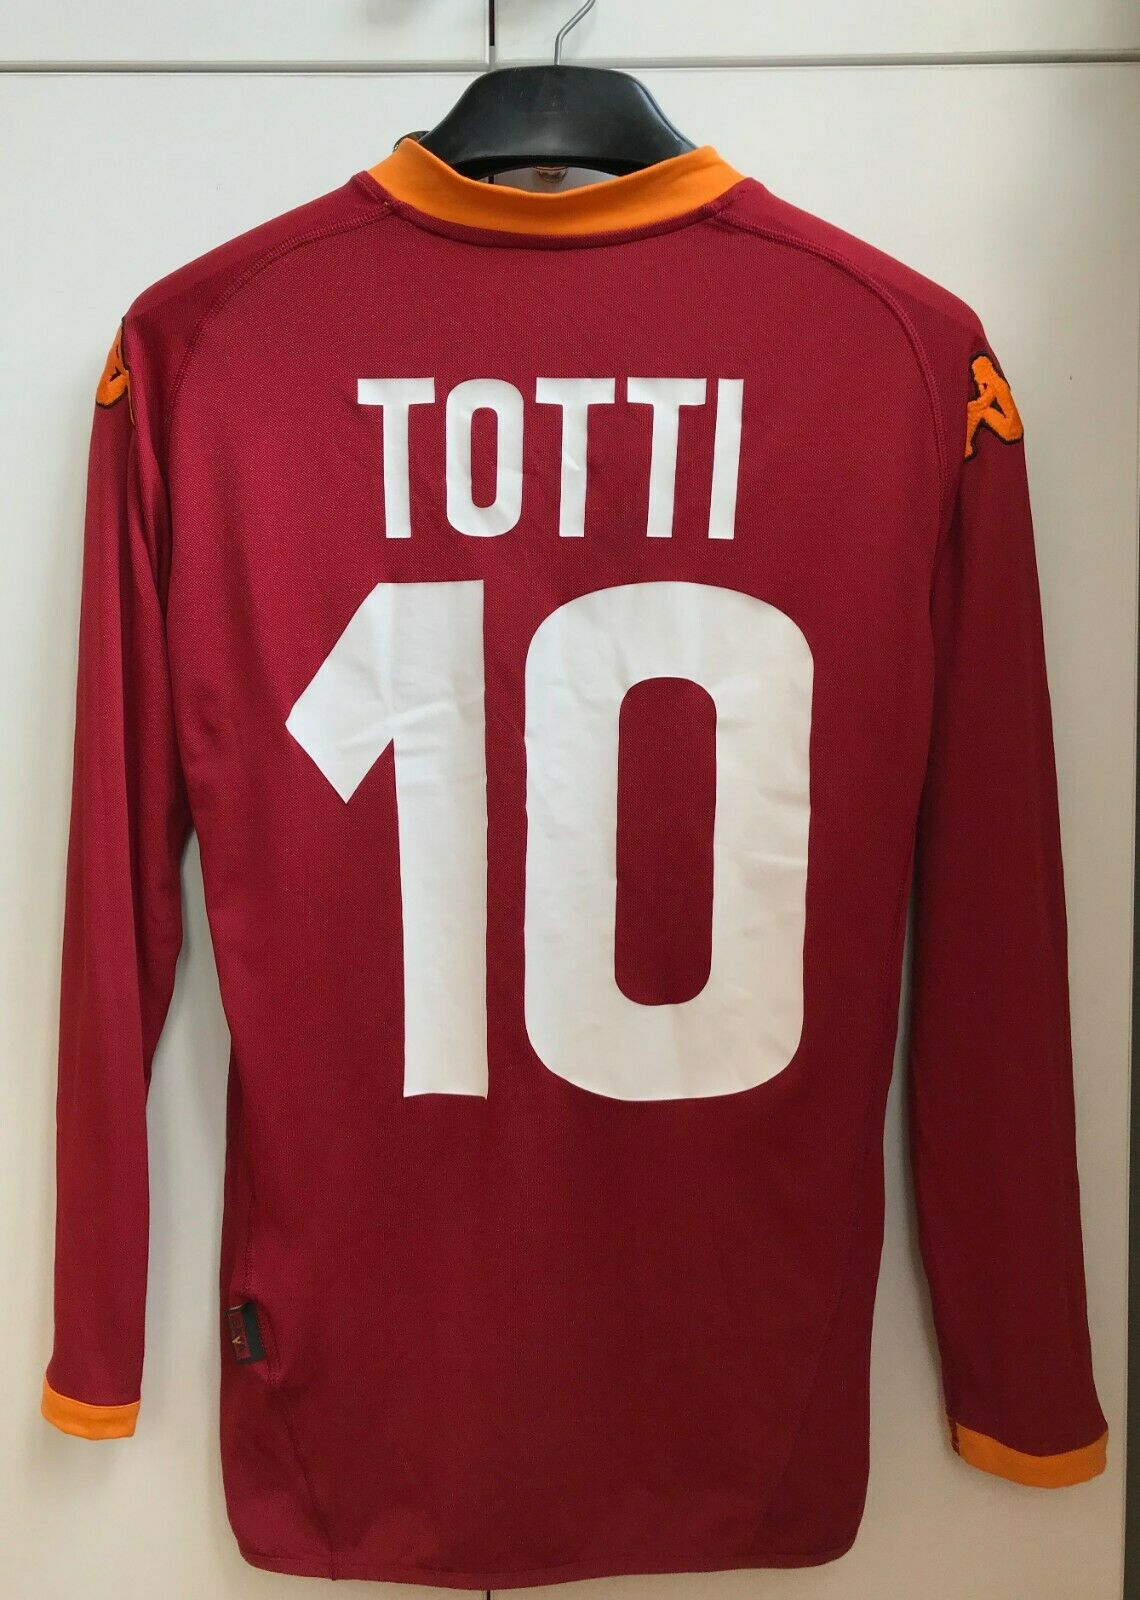 AS ROMA ITALY 2007 2008 HOME FOOTBALL SHIRT JERSEY KAPPA TOTTI  10 LONG SLEEVE